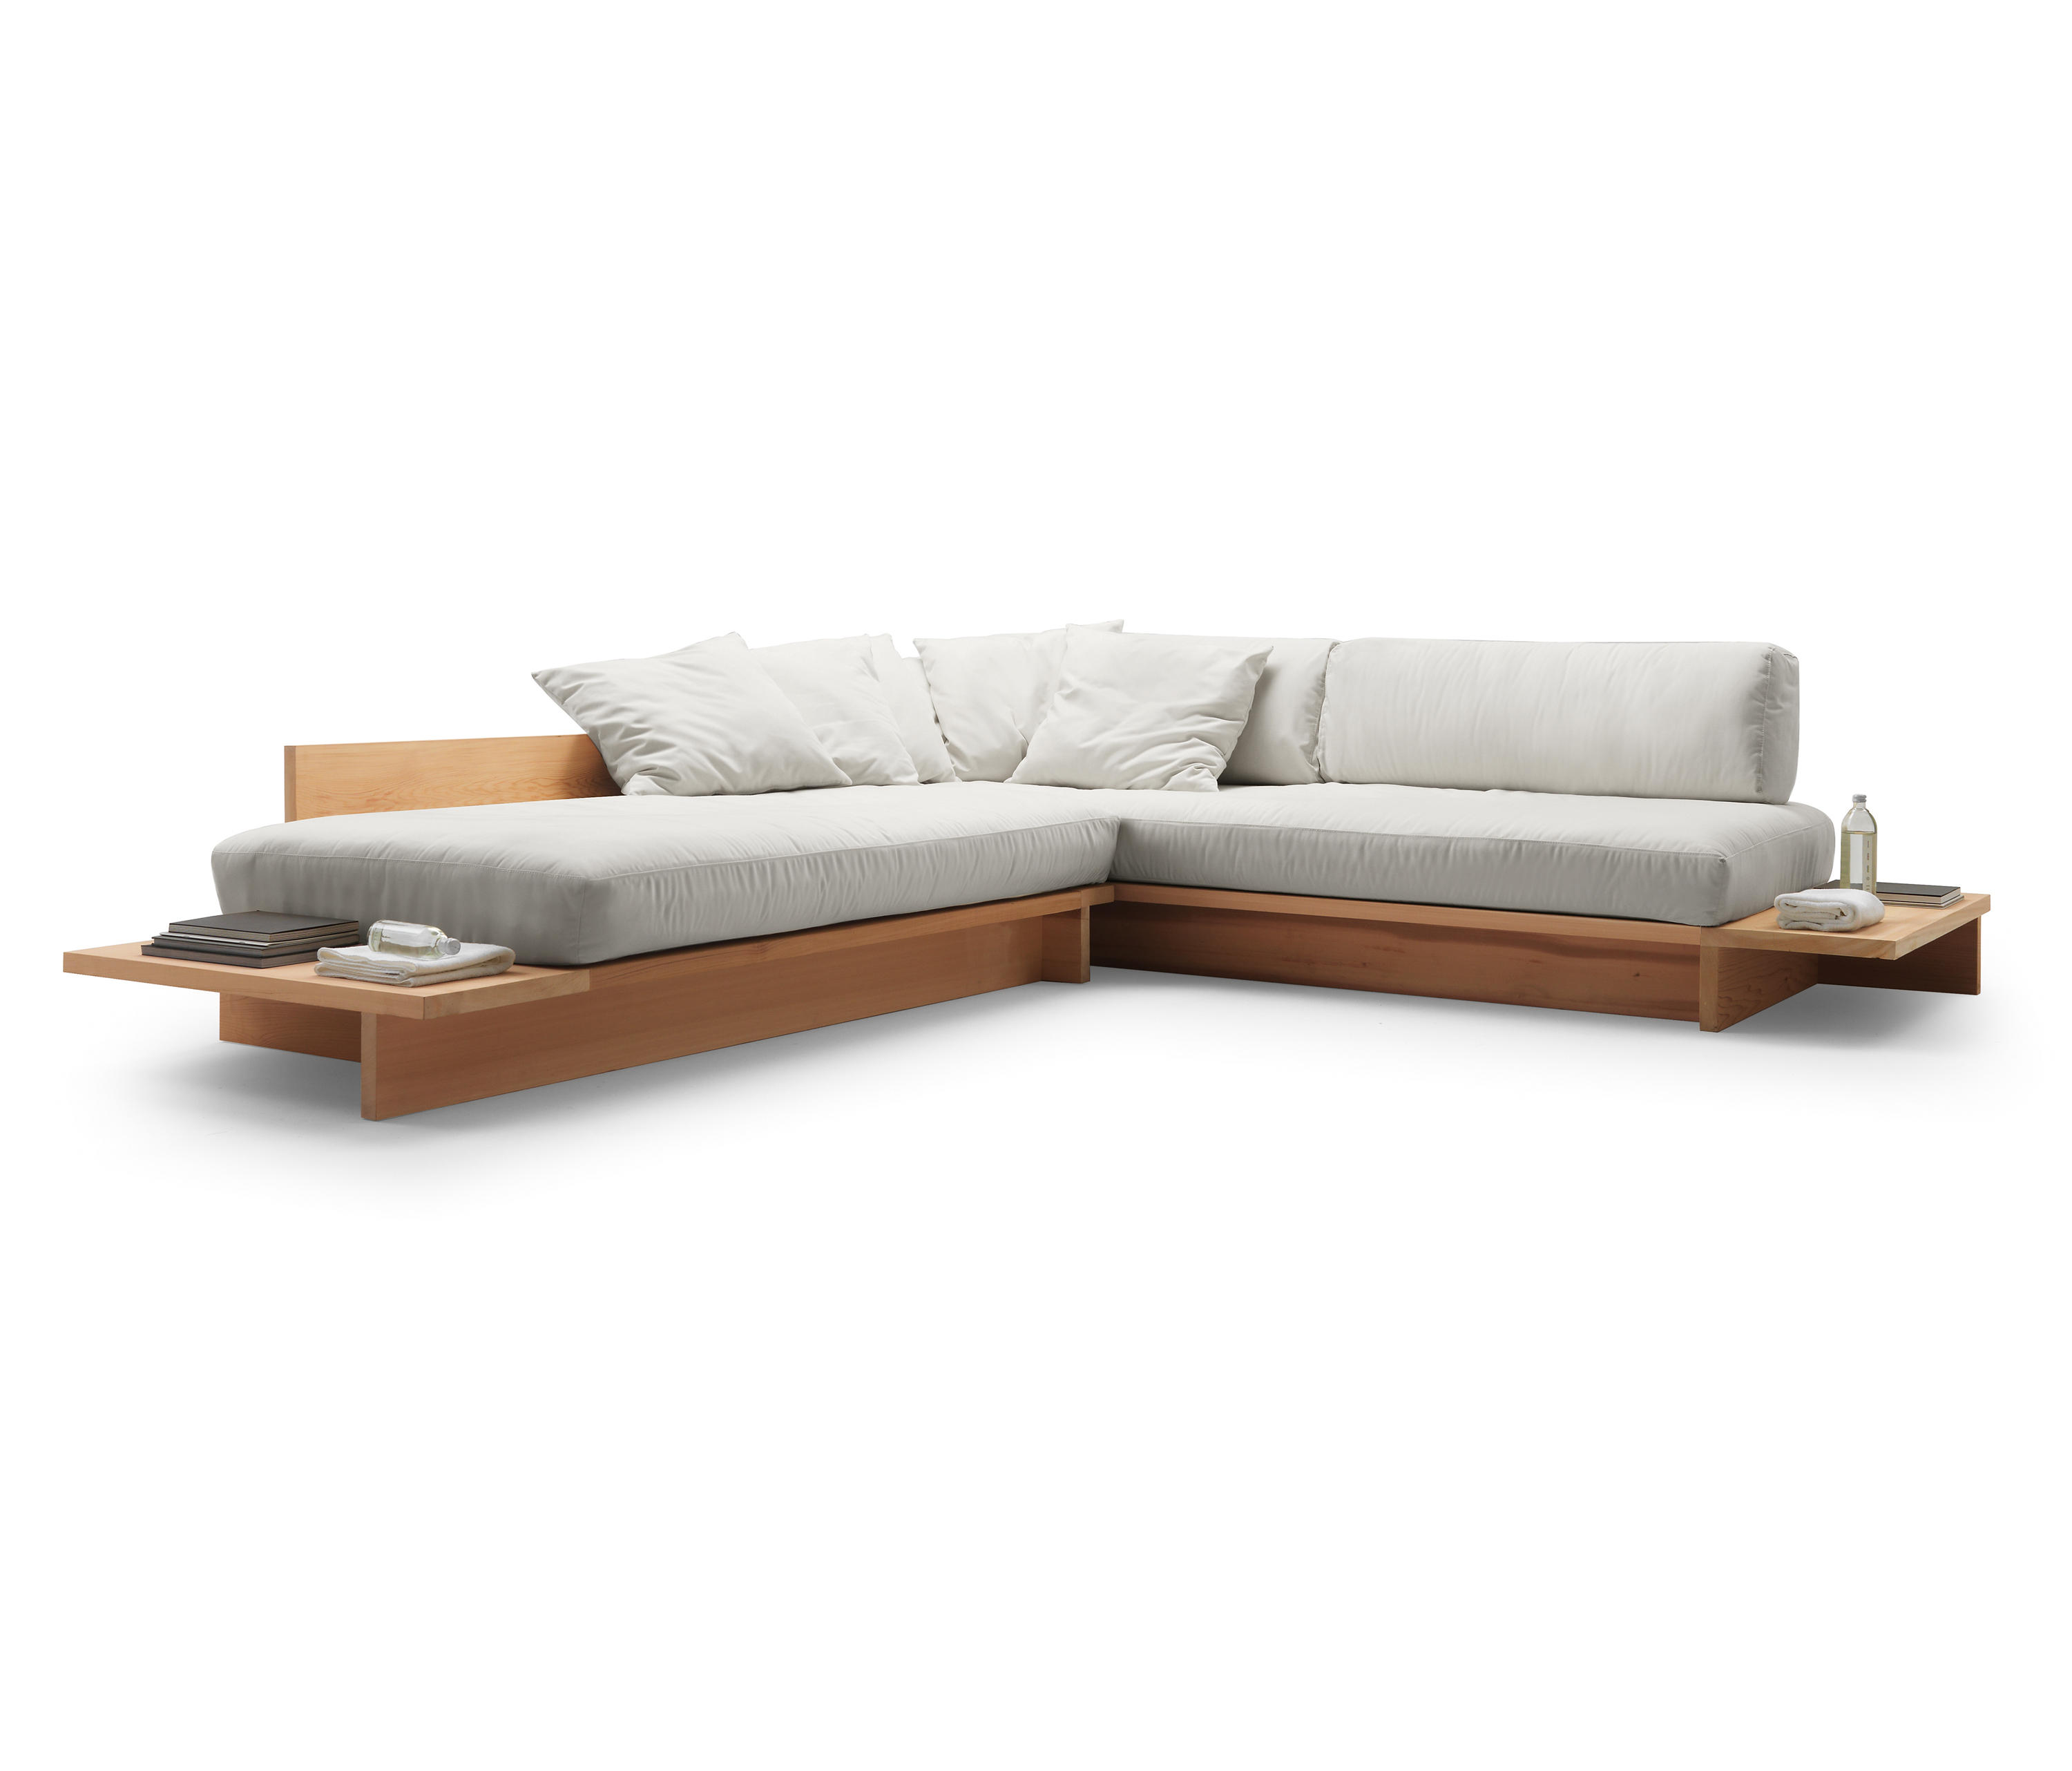 Zen sofa garden sofas from exteta architonic for Zen sectional sofa